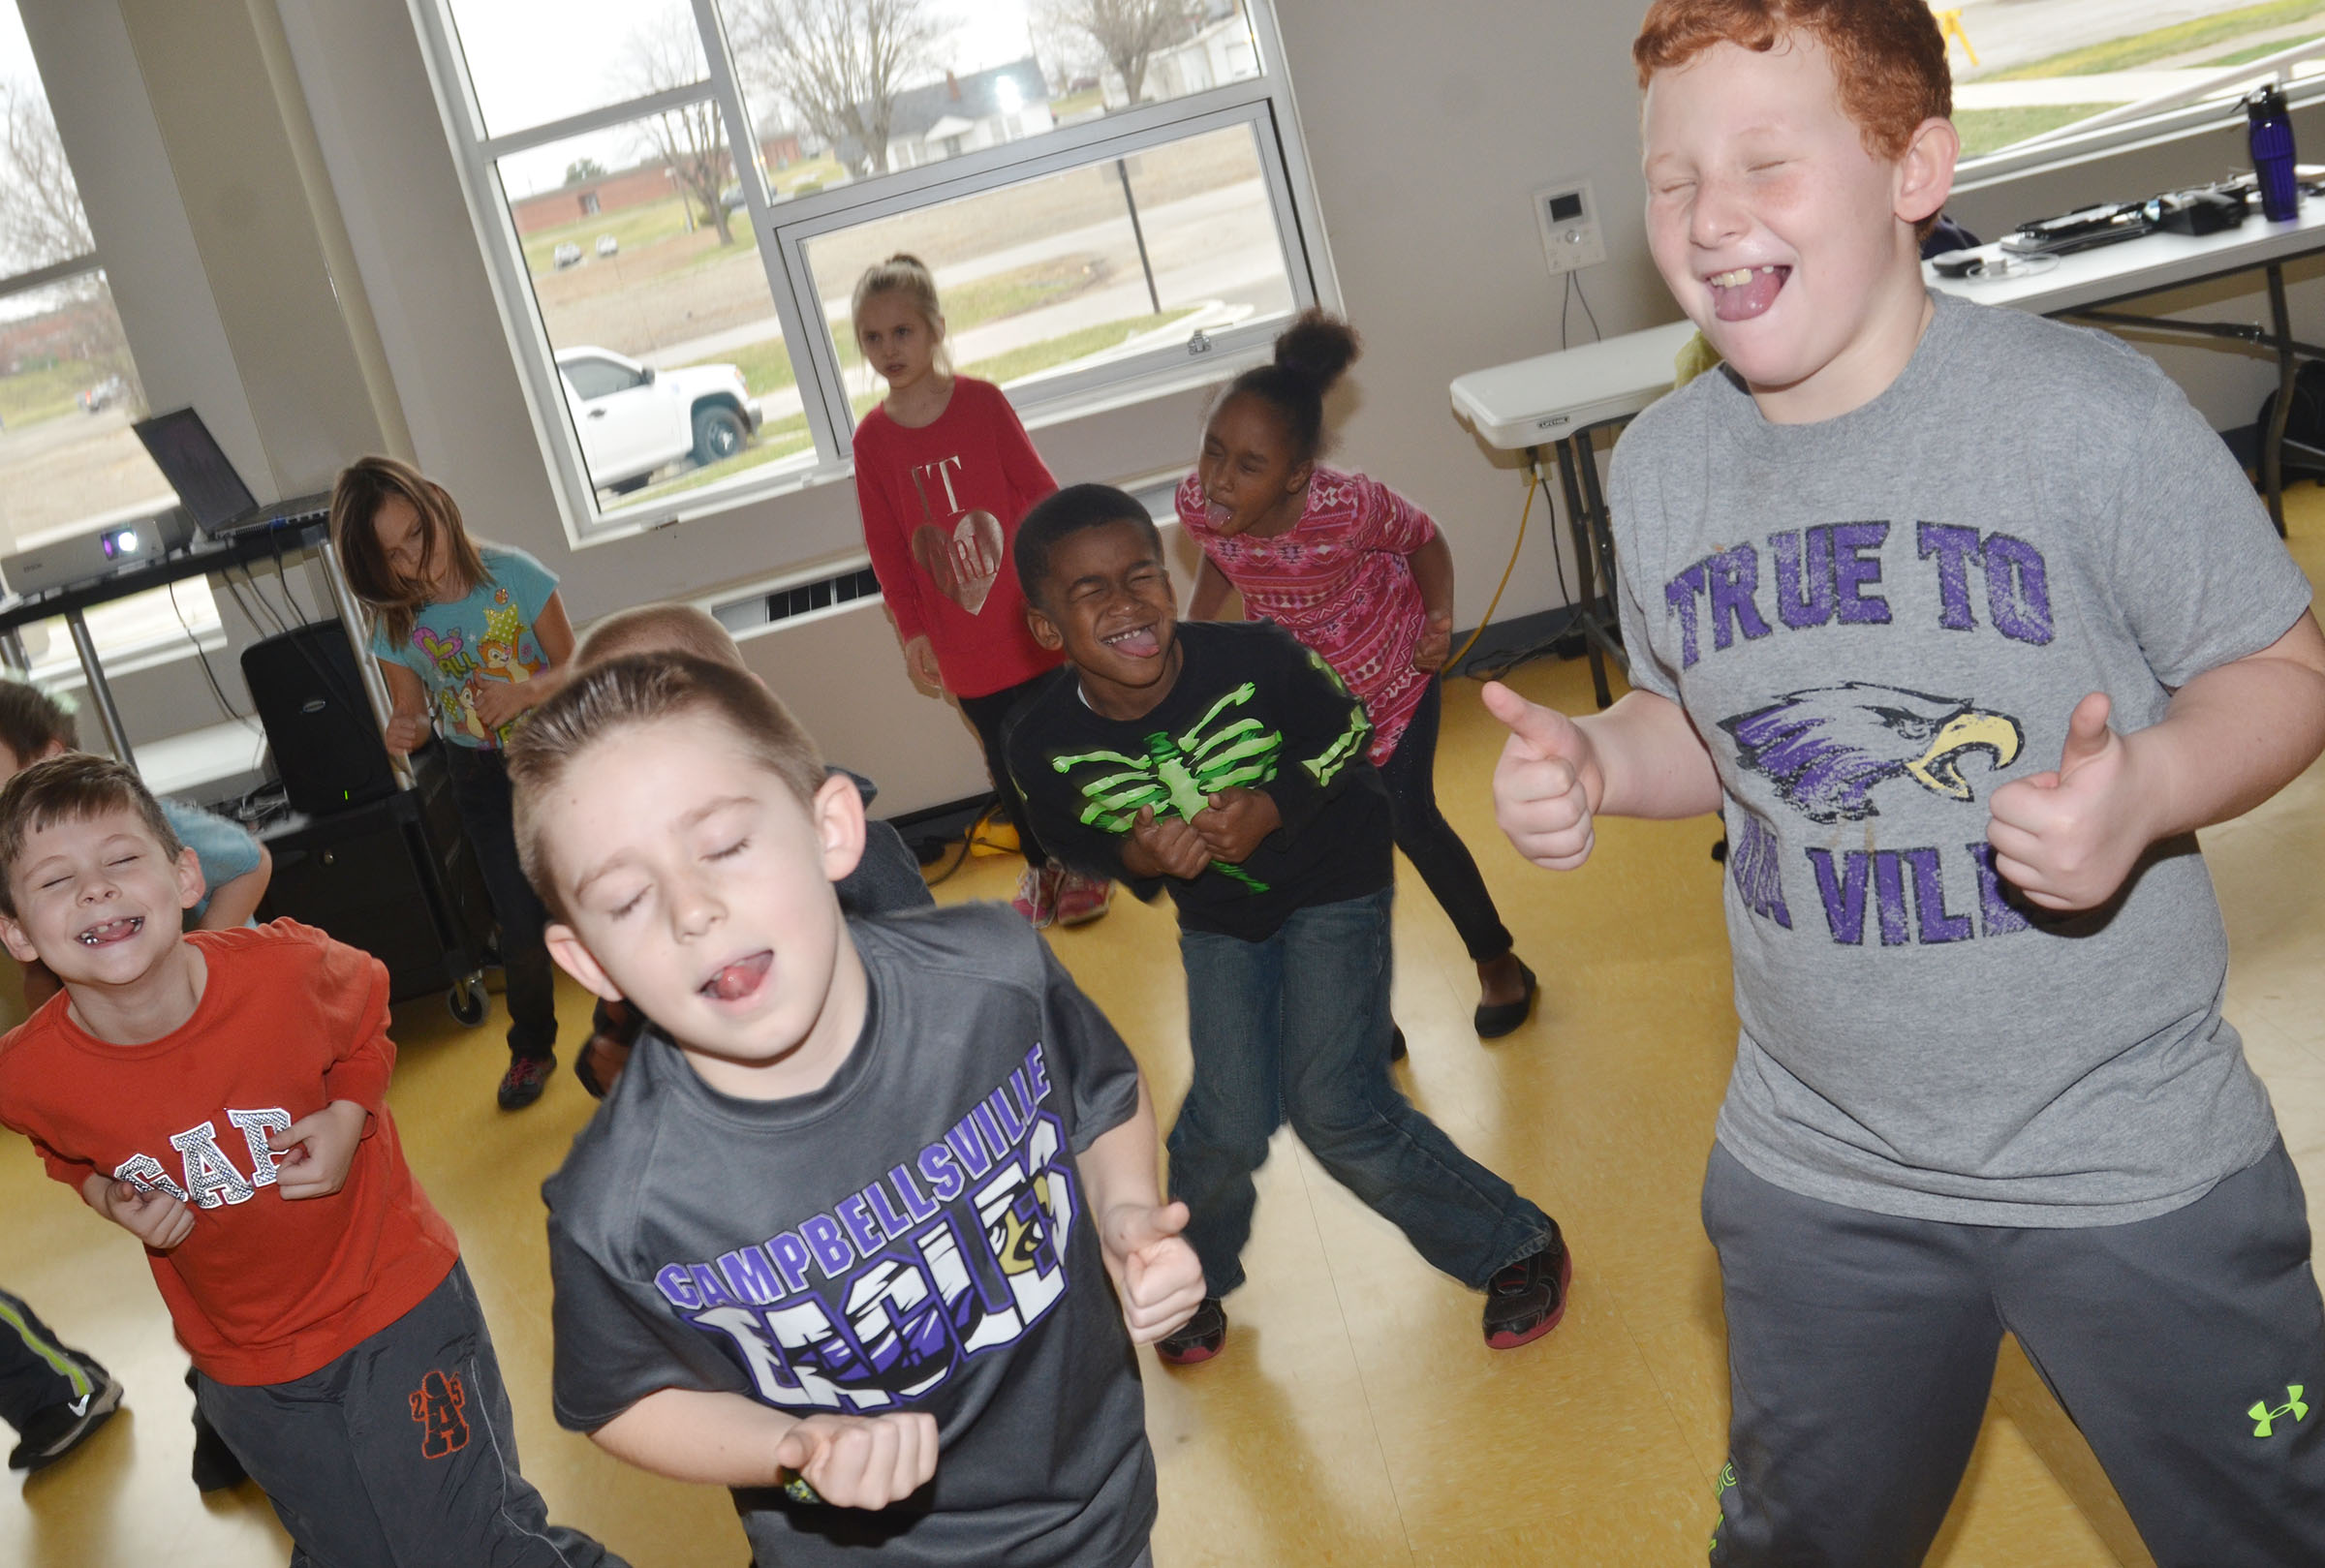 CES second-graders are instructed to close their eyes and stick out their tongues as they work out. In front are, from left, Ryan Tungate, Lanigan Price and Reece Swafford.